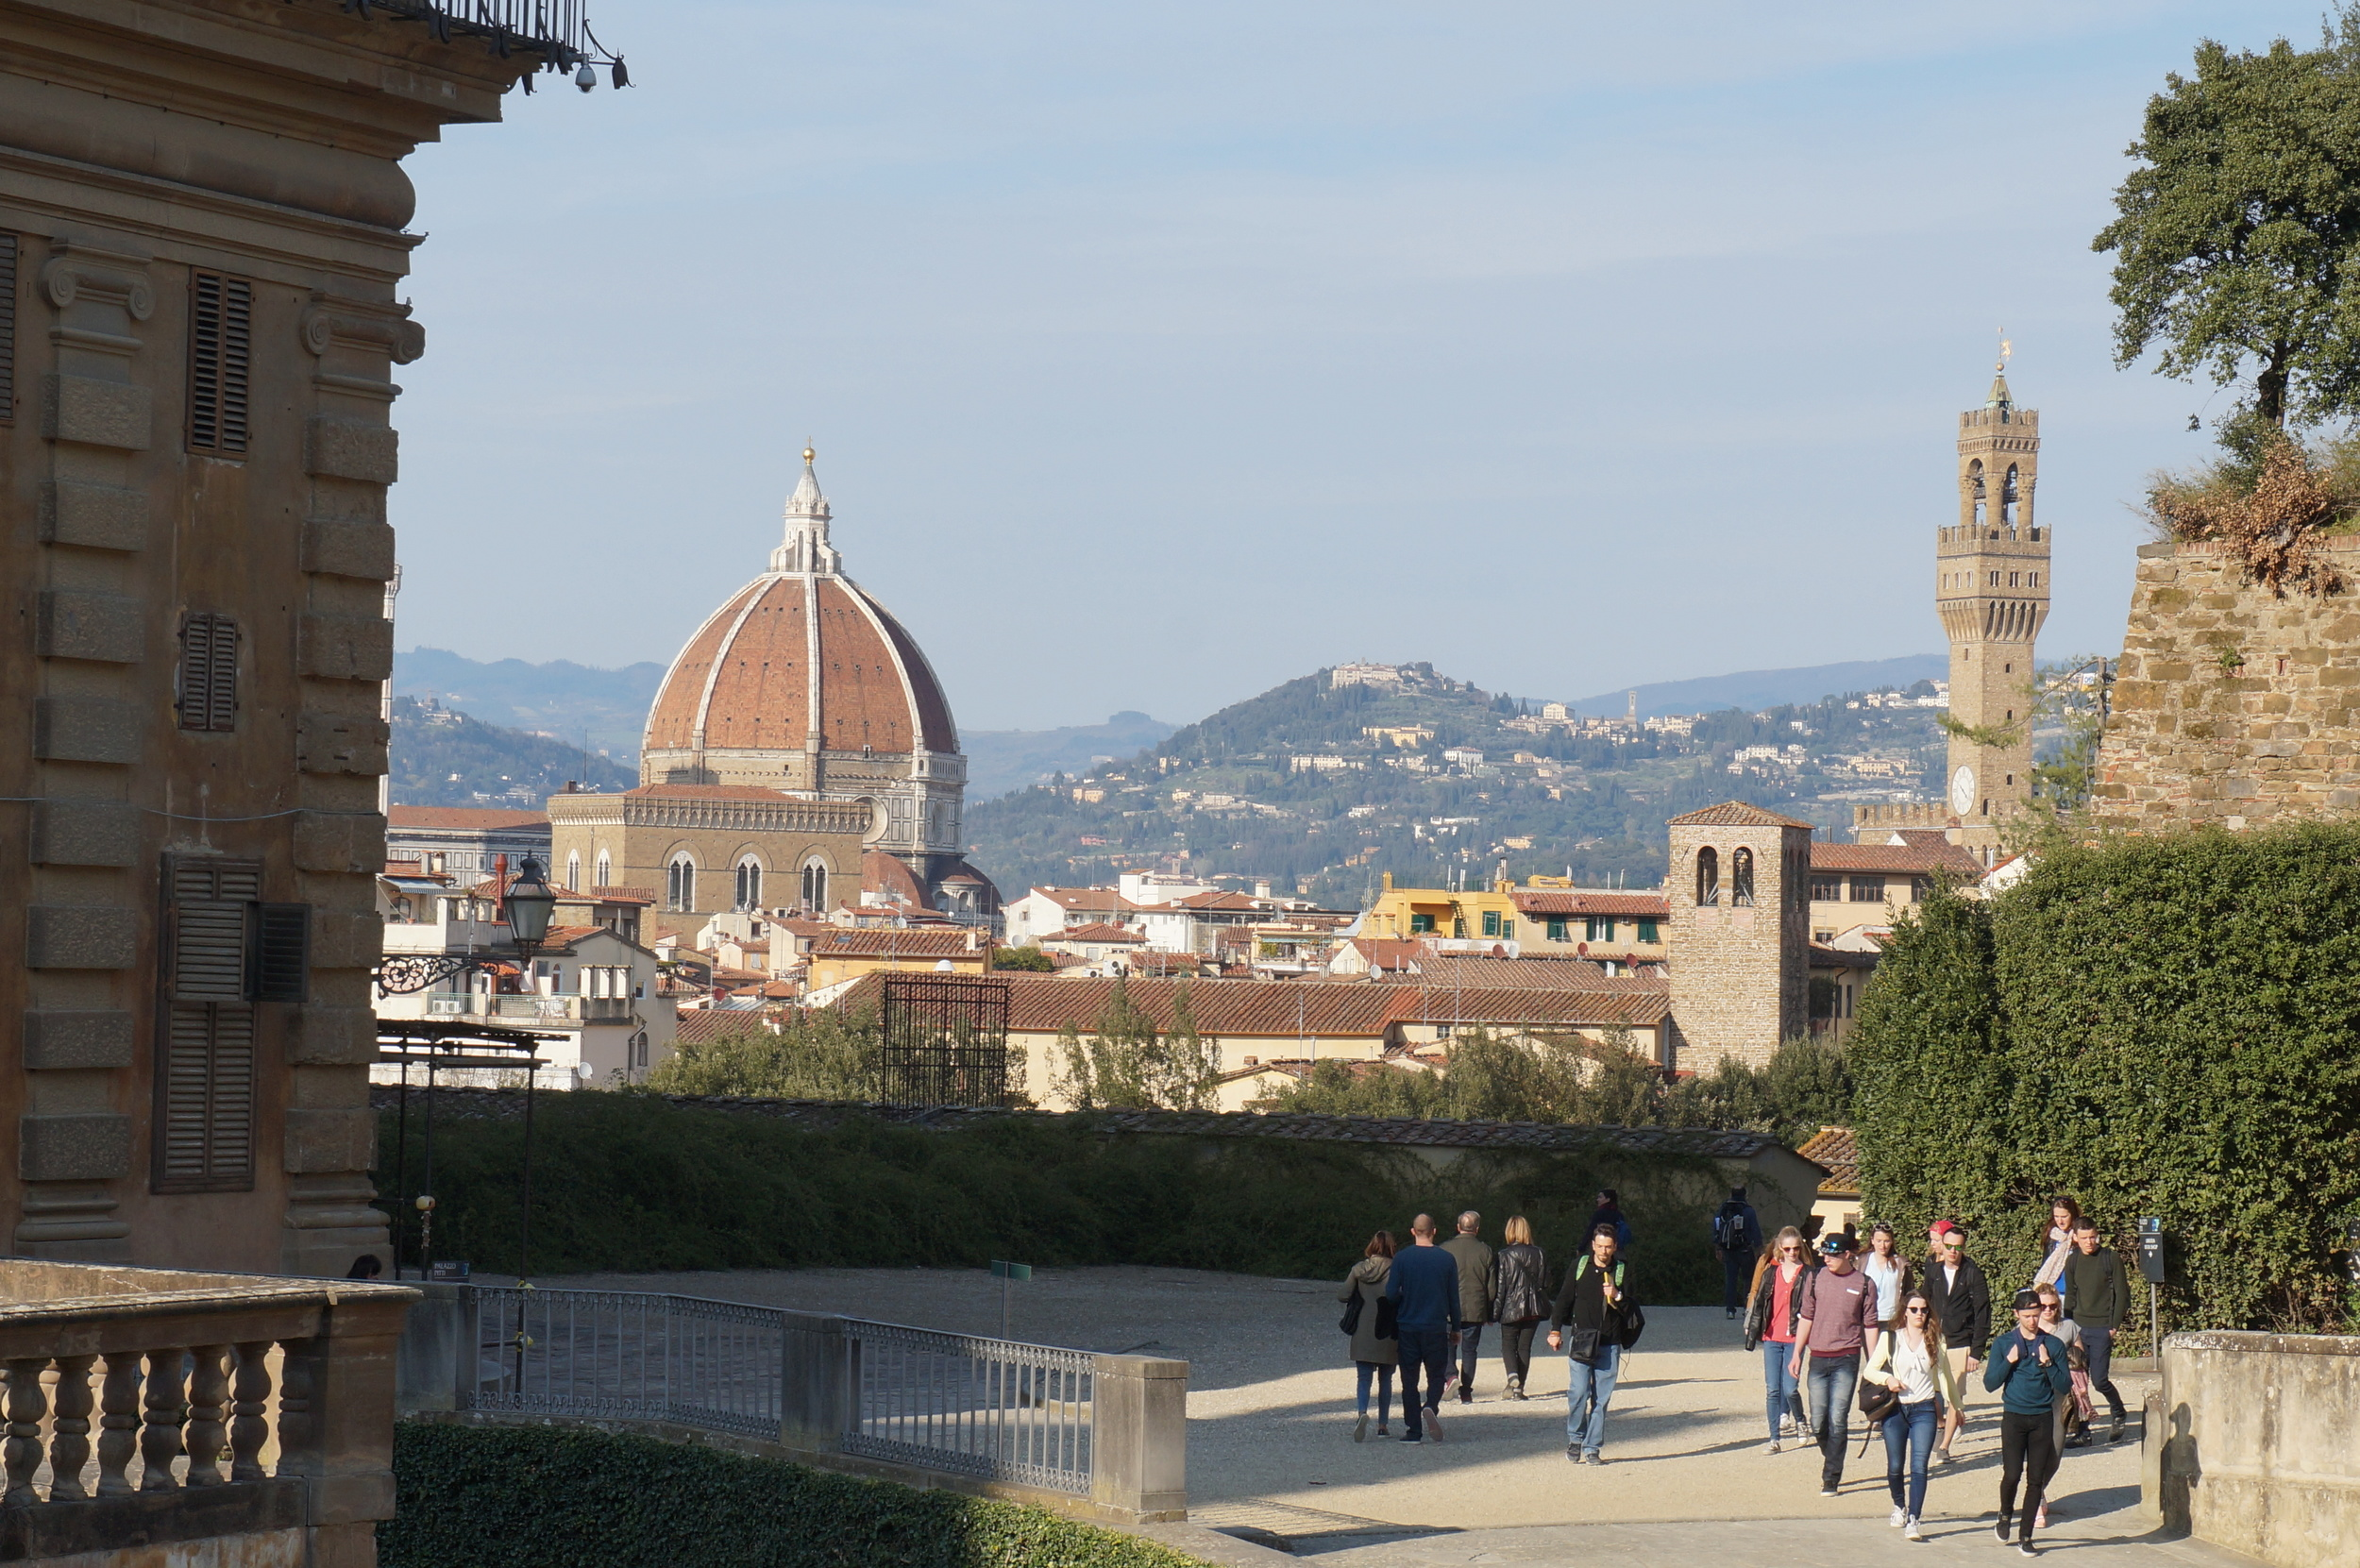 ....and from the Boboli gardens